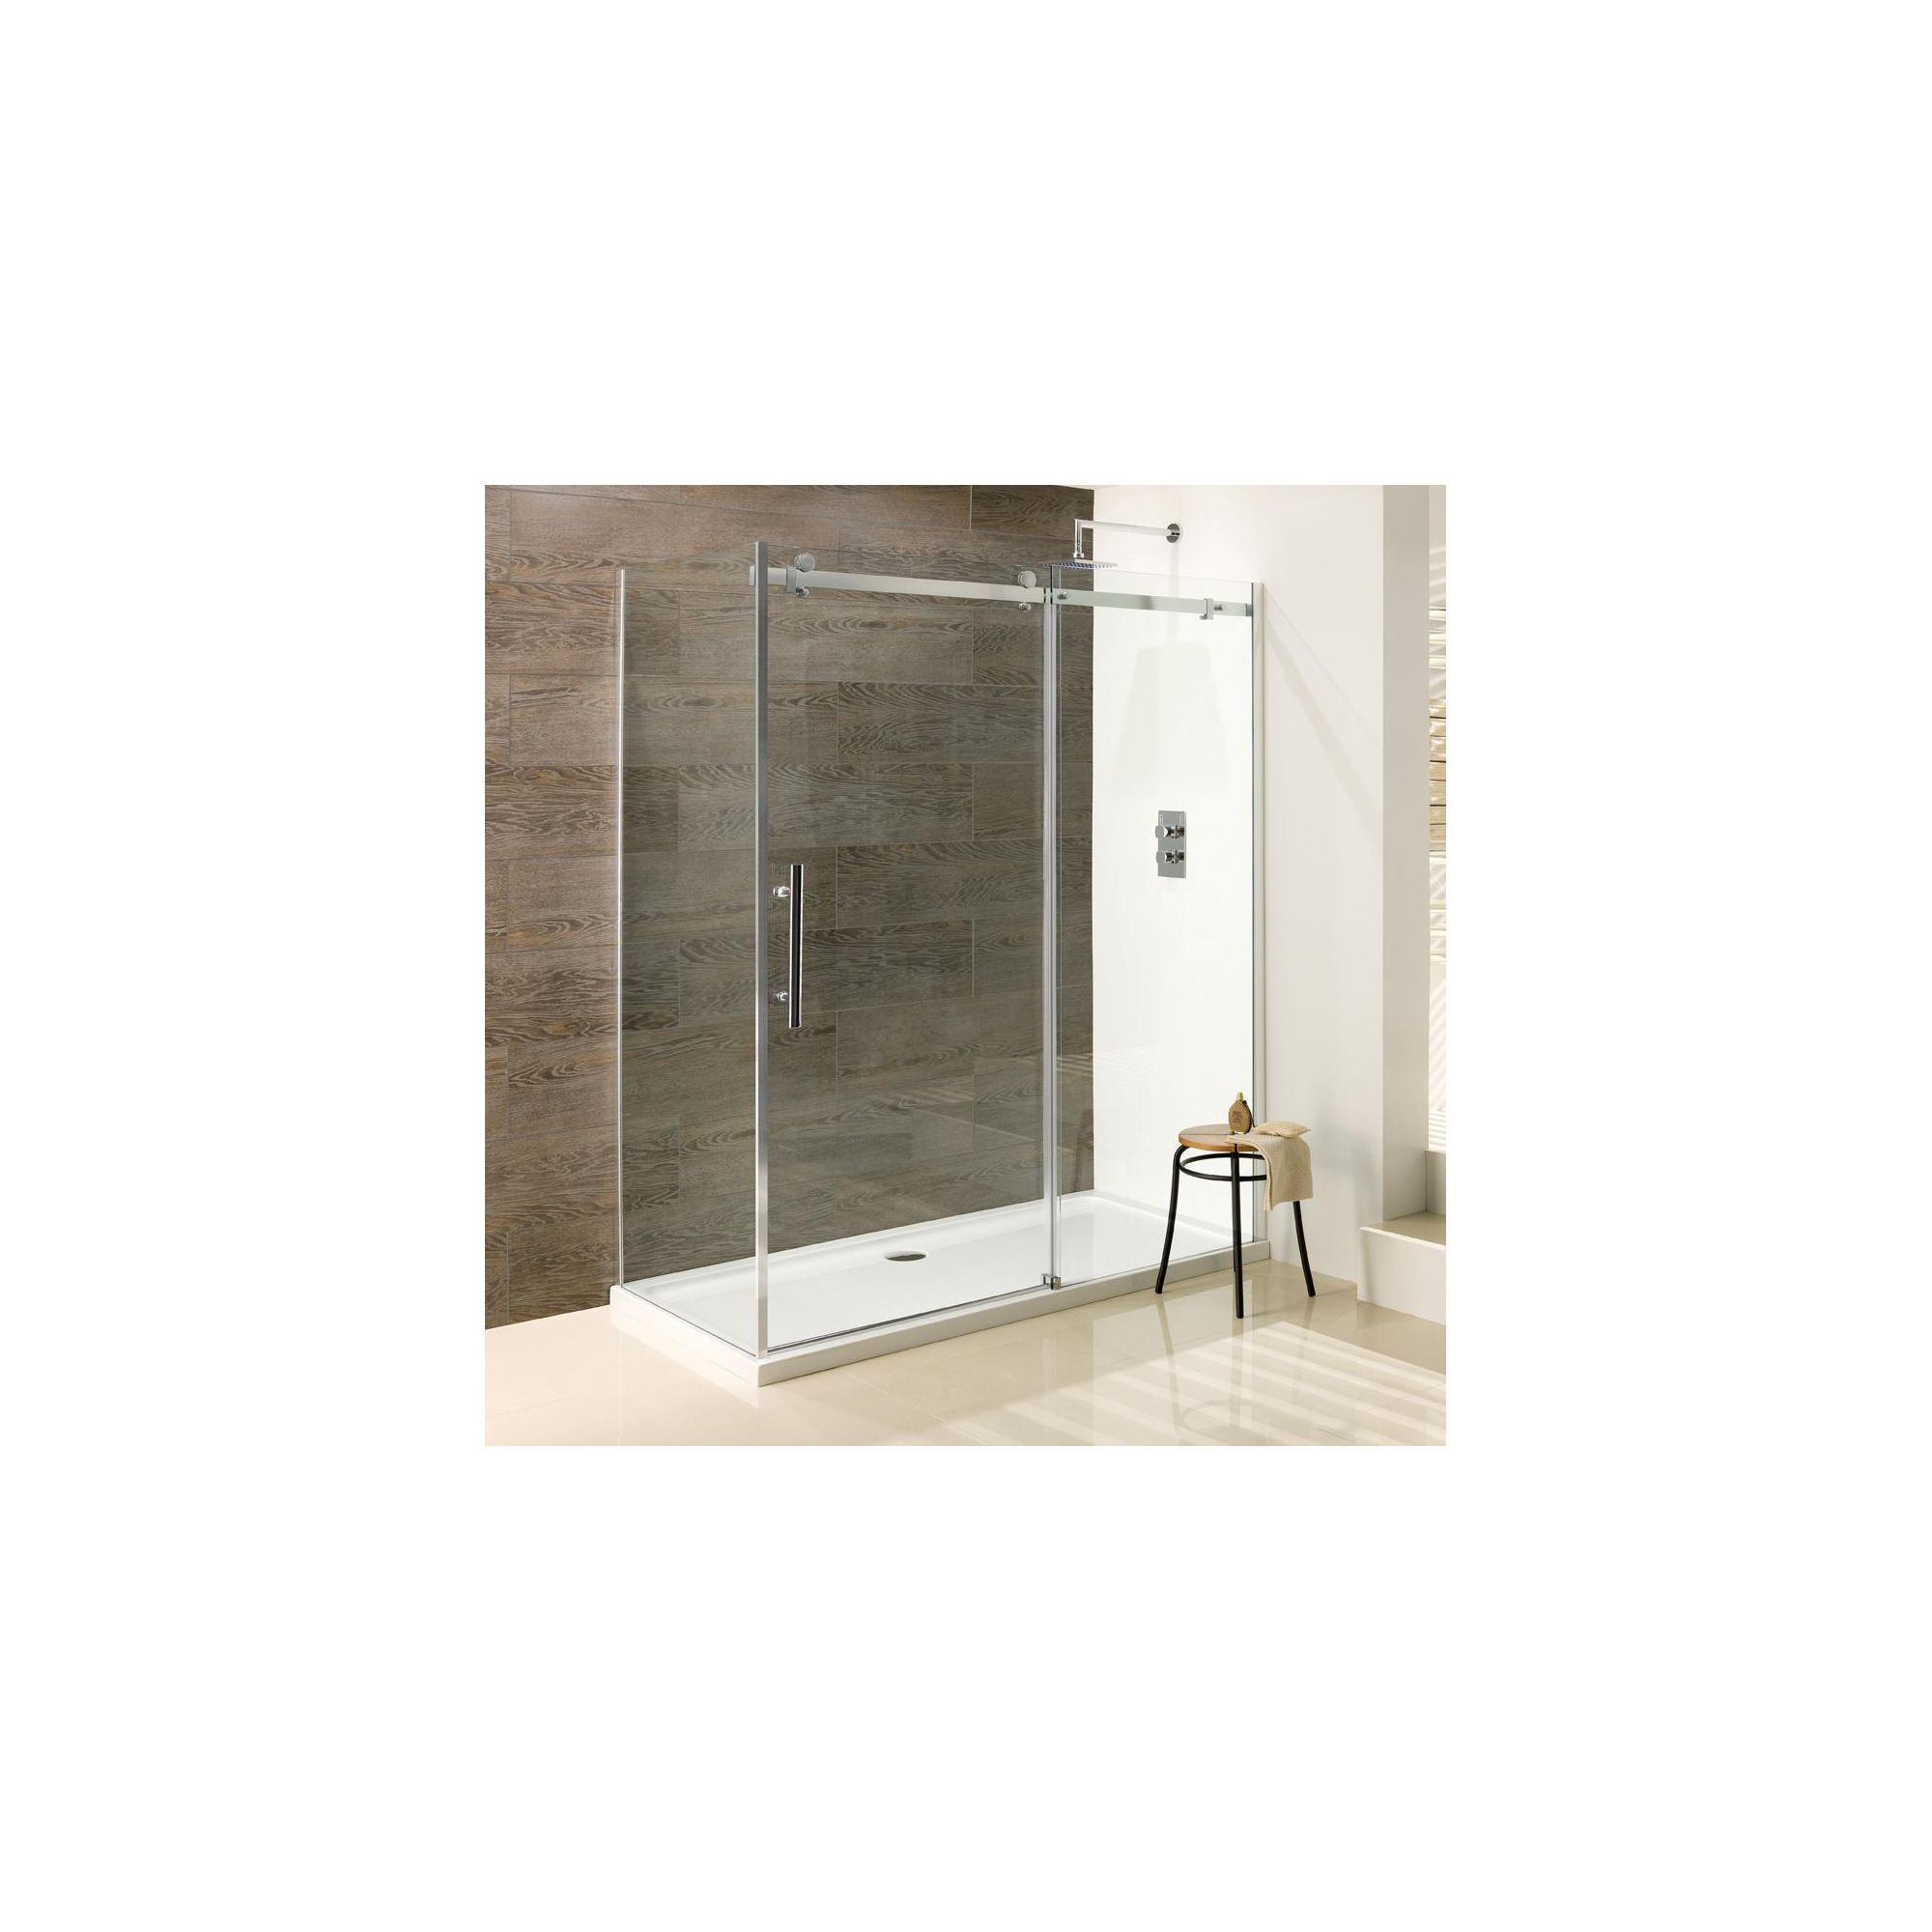 Duchy Deluxe Silver Sliding Door Shower Enclosure with Side Panel 1100mm x 900mm (Complete with Tray), 10mm Glass at Tesco Direct